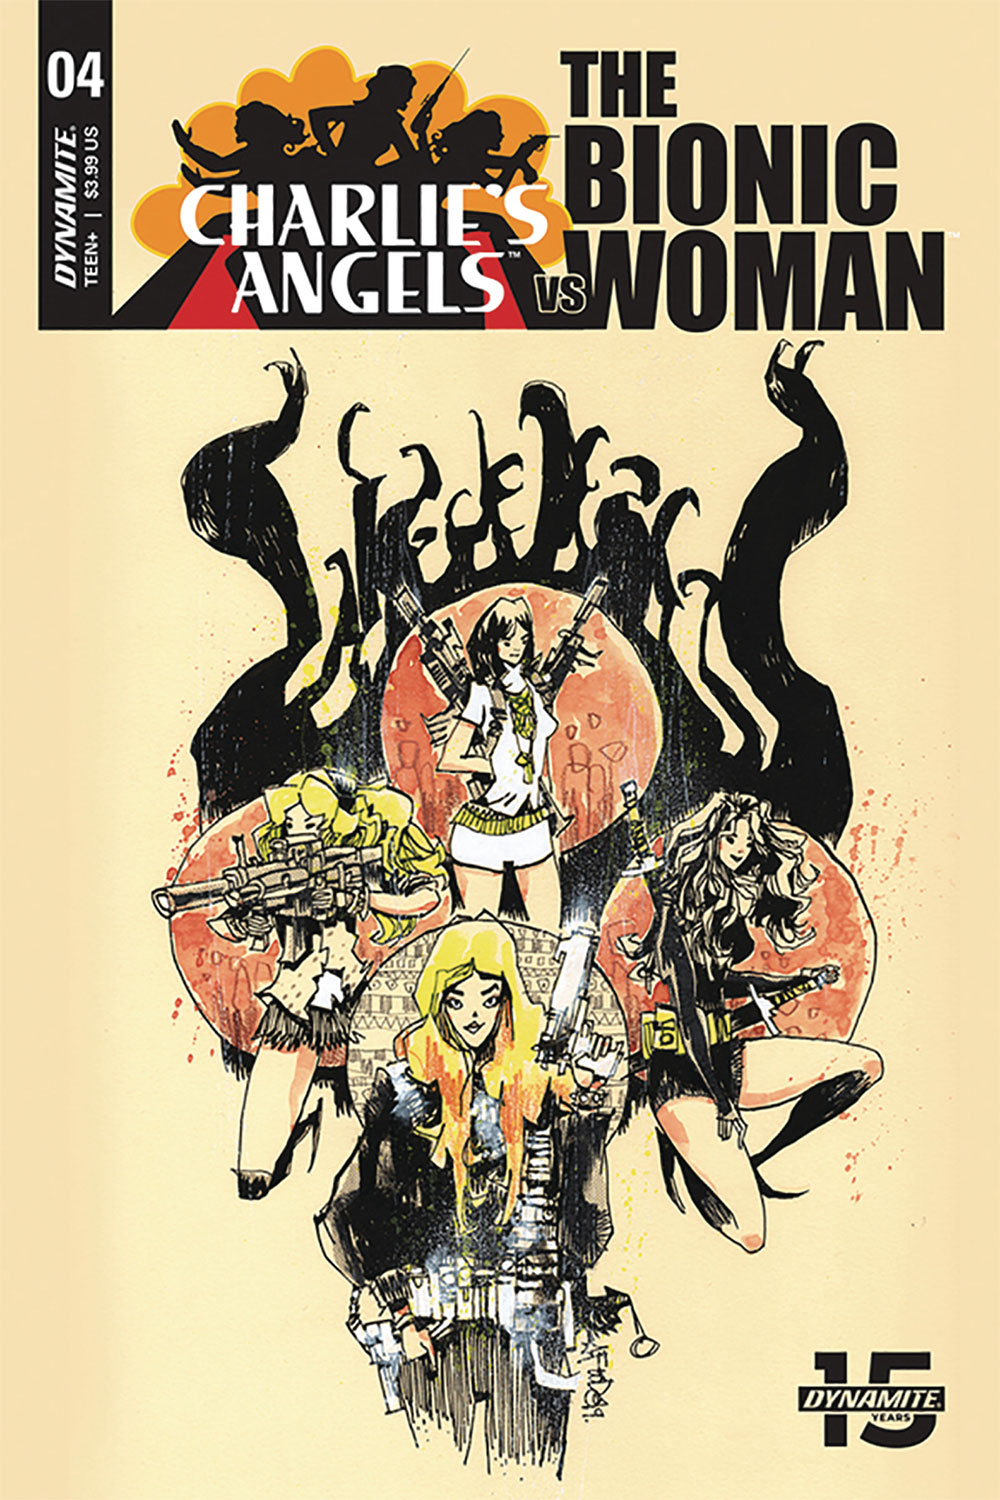 CHARLIE'S ANGELS VS. THE BIONIC WOMAN #4 VARIANT